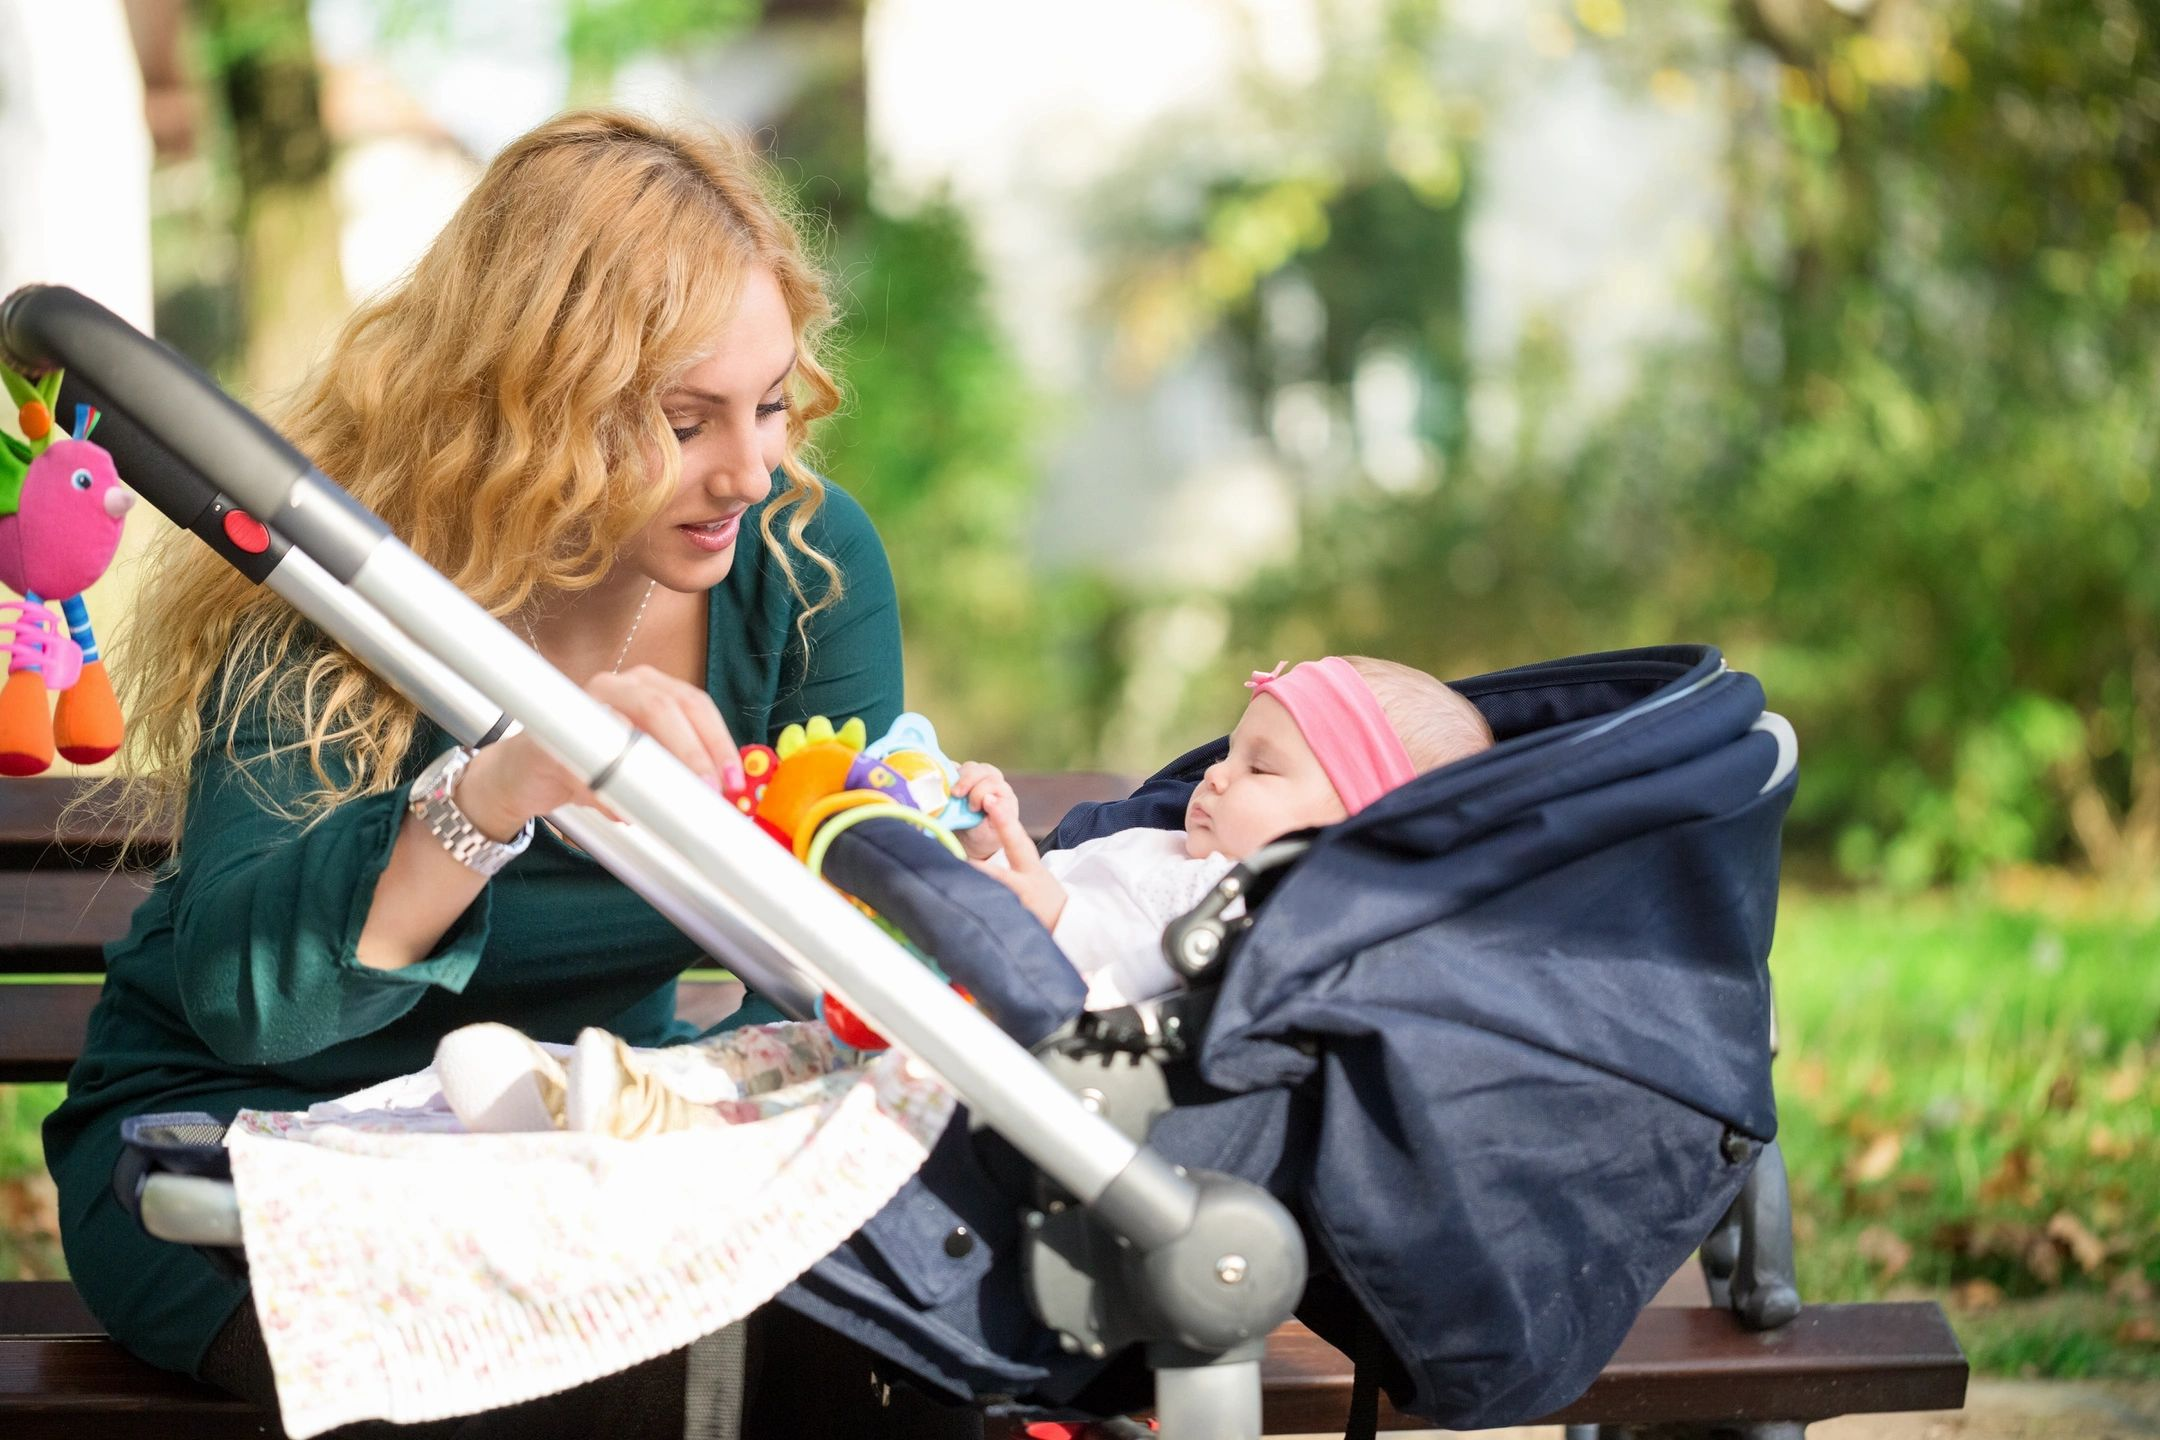 Best Travel System For Your Baby of 2020